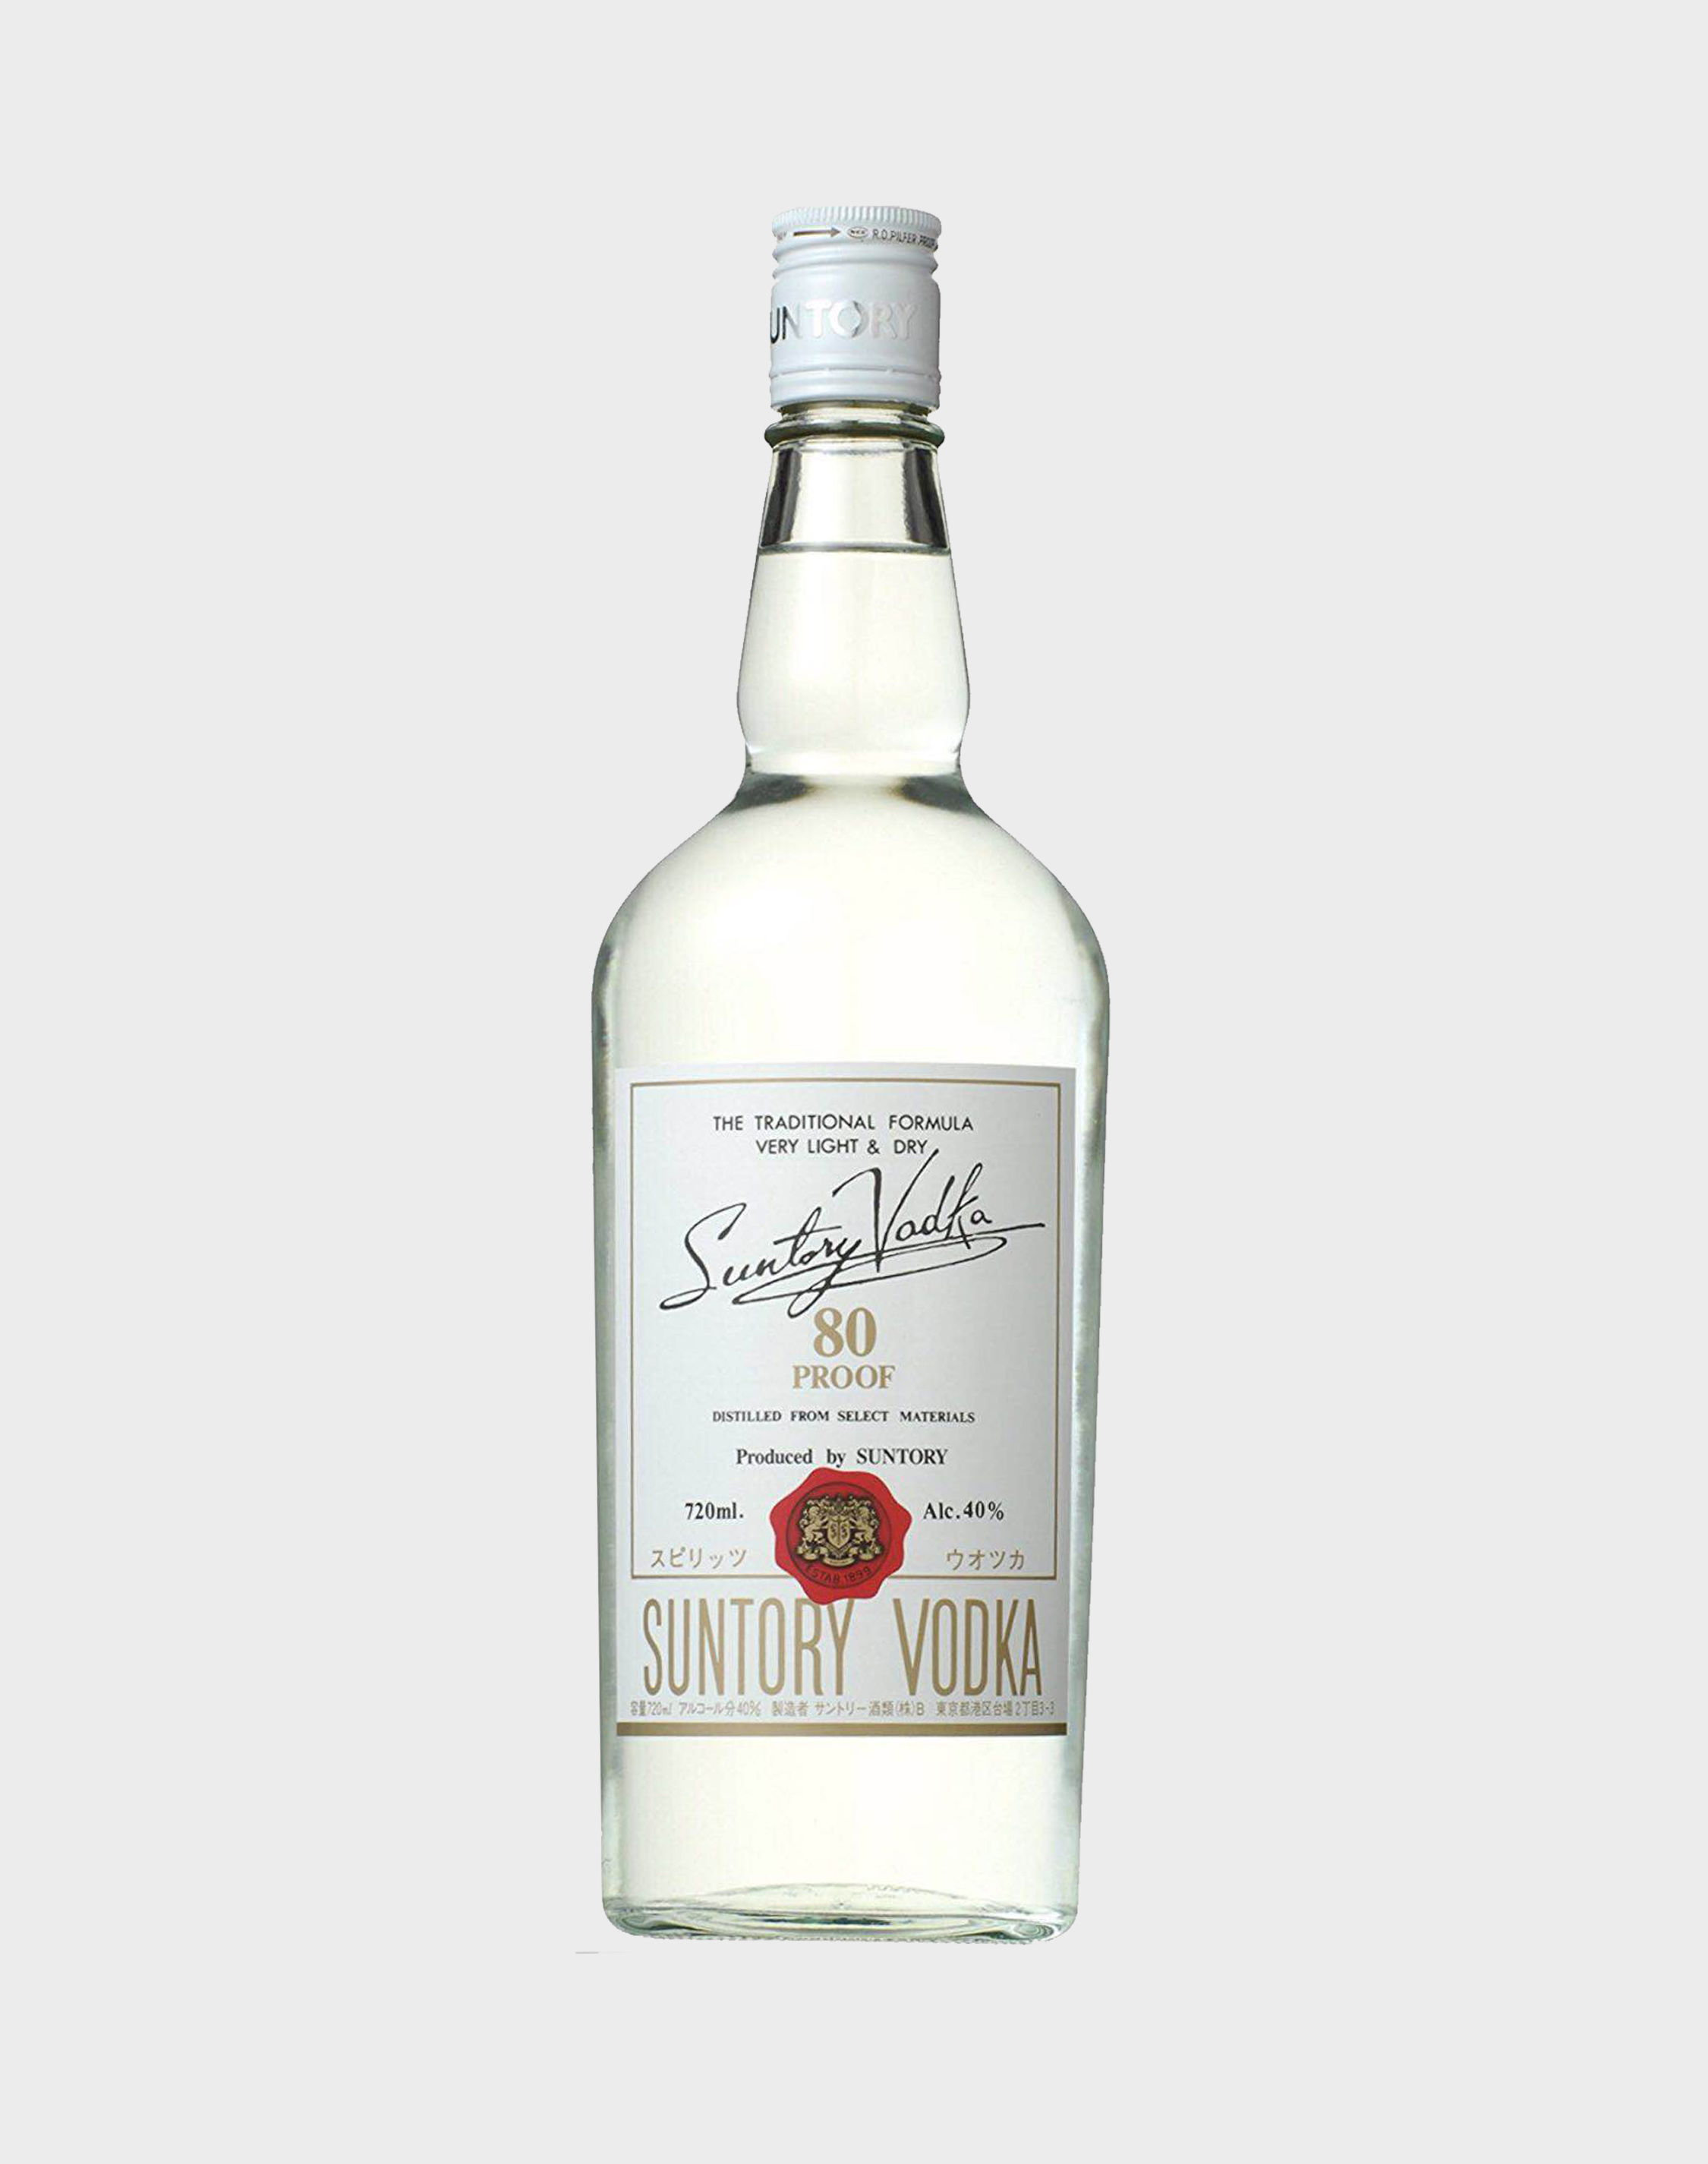 Suntory Vodka 80 Proof